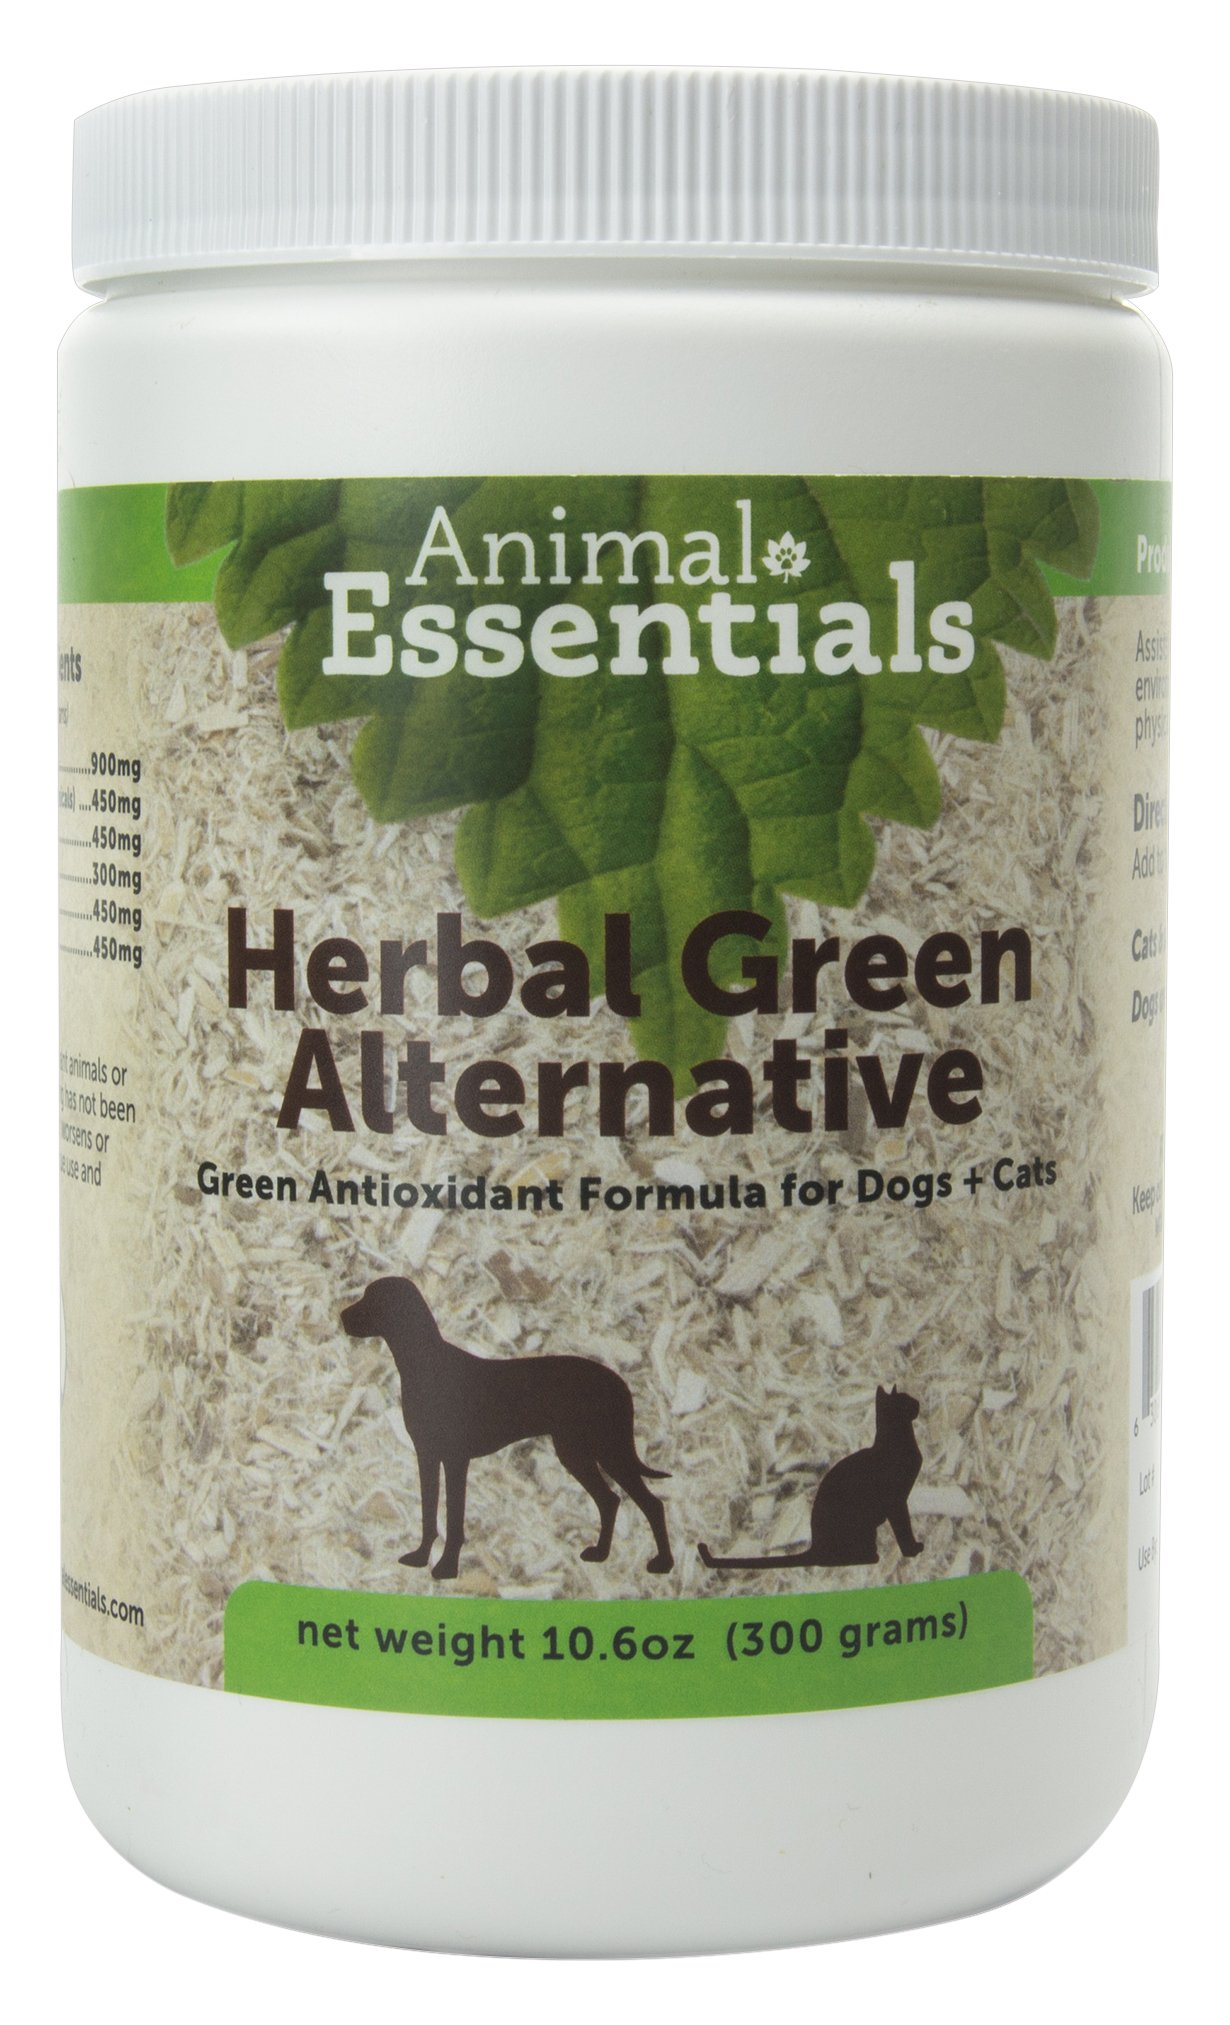 Animal Essentials Herbal Green Alternative Dog and Cat Supplement 10.6 Ounce Jar by Animal Essentials